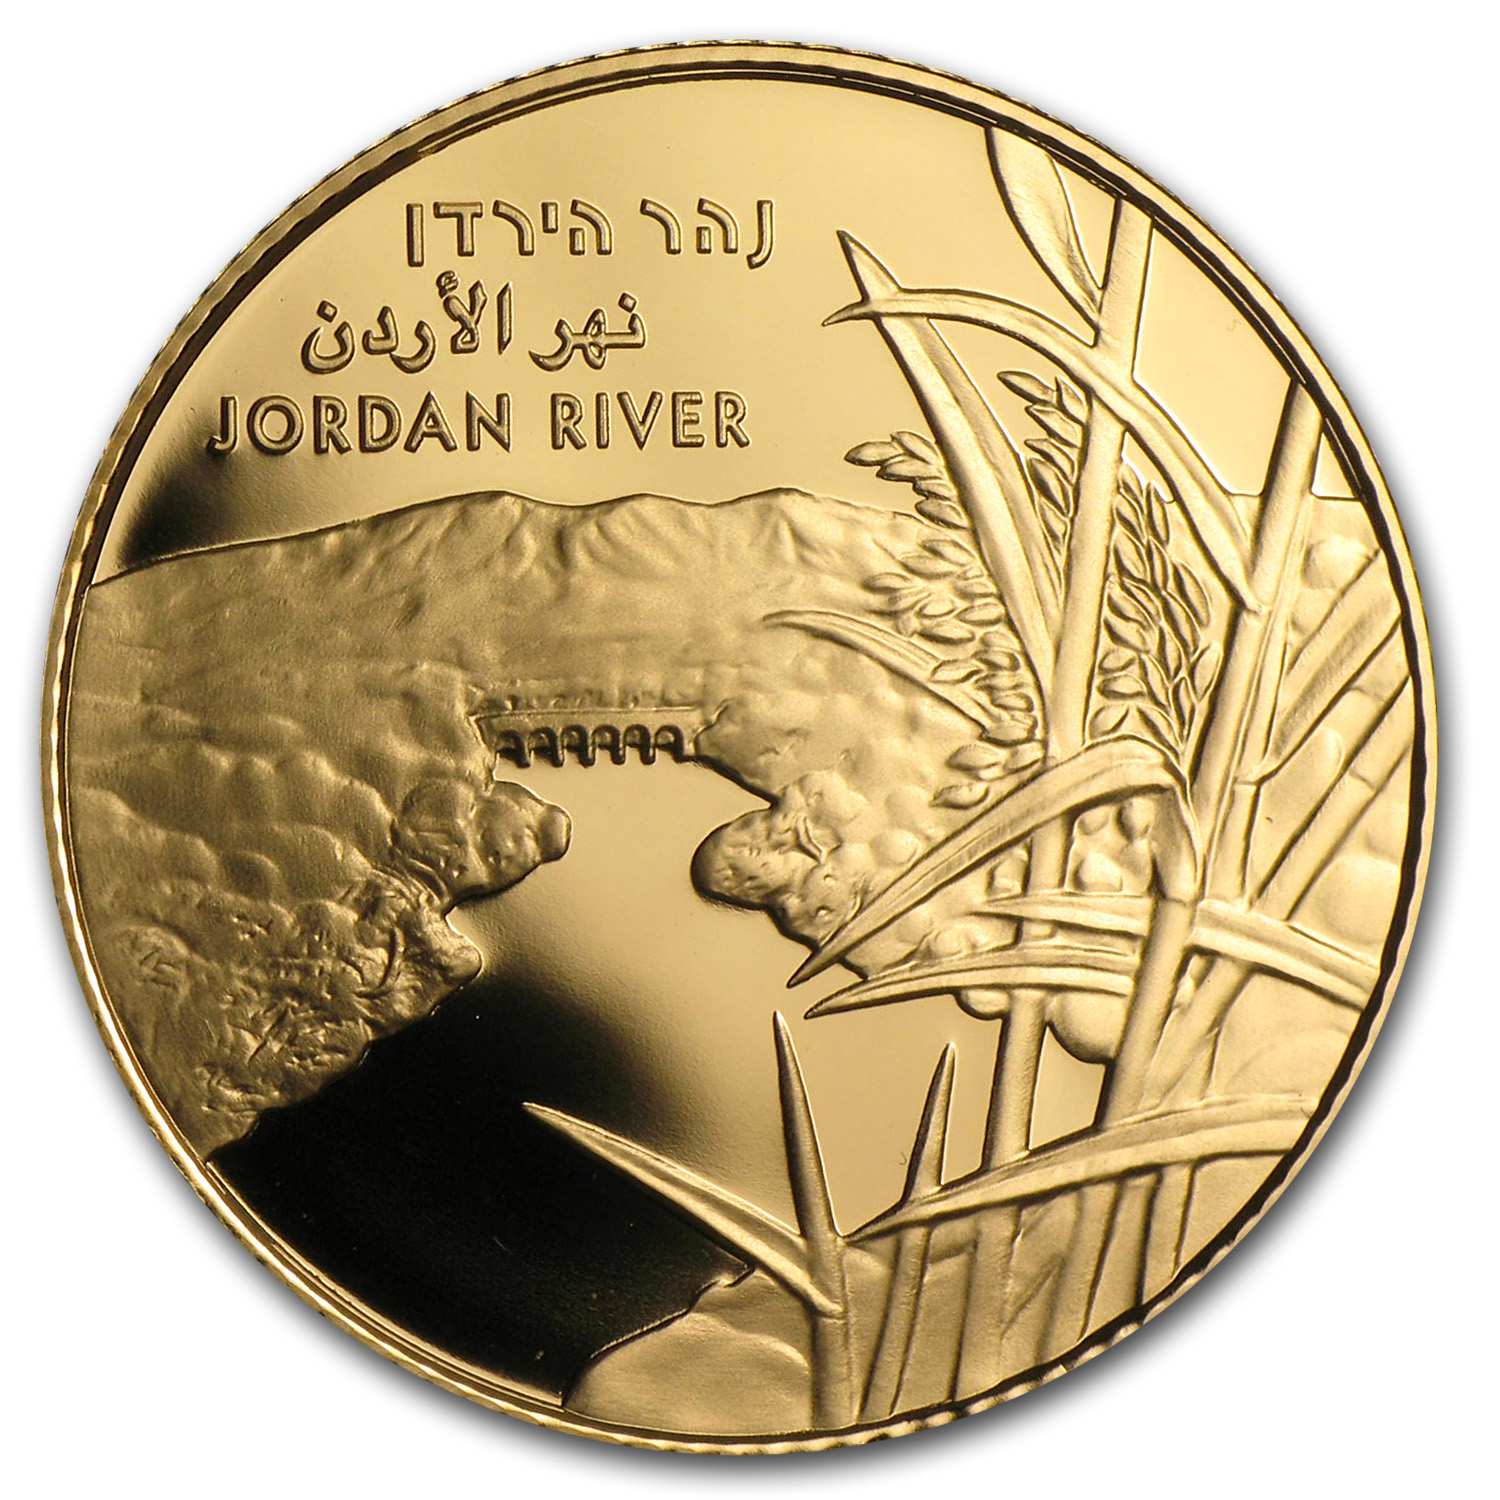 2013 Israel 1/2 oz Gold The Jordan River Proof